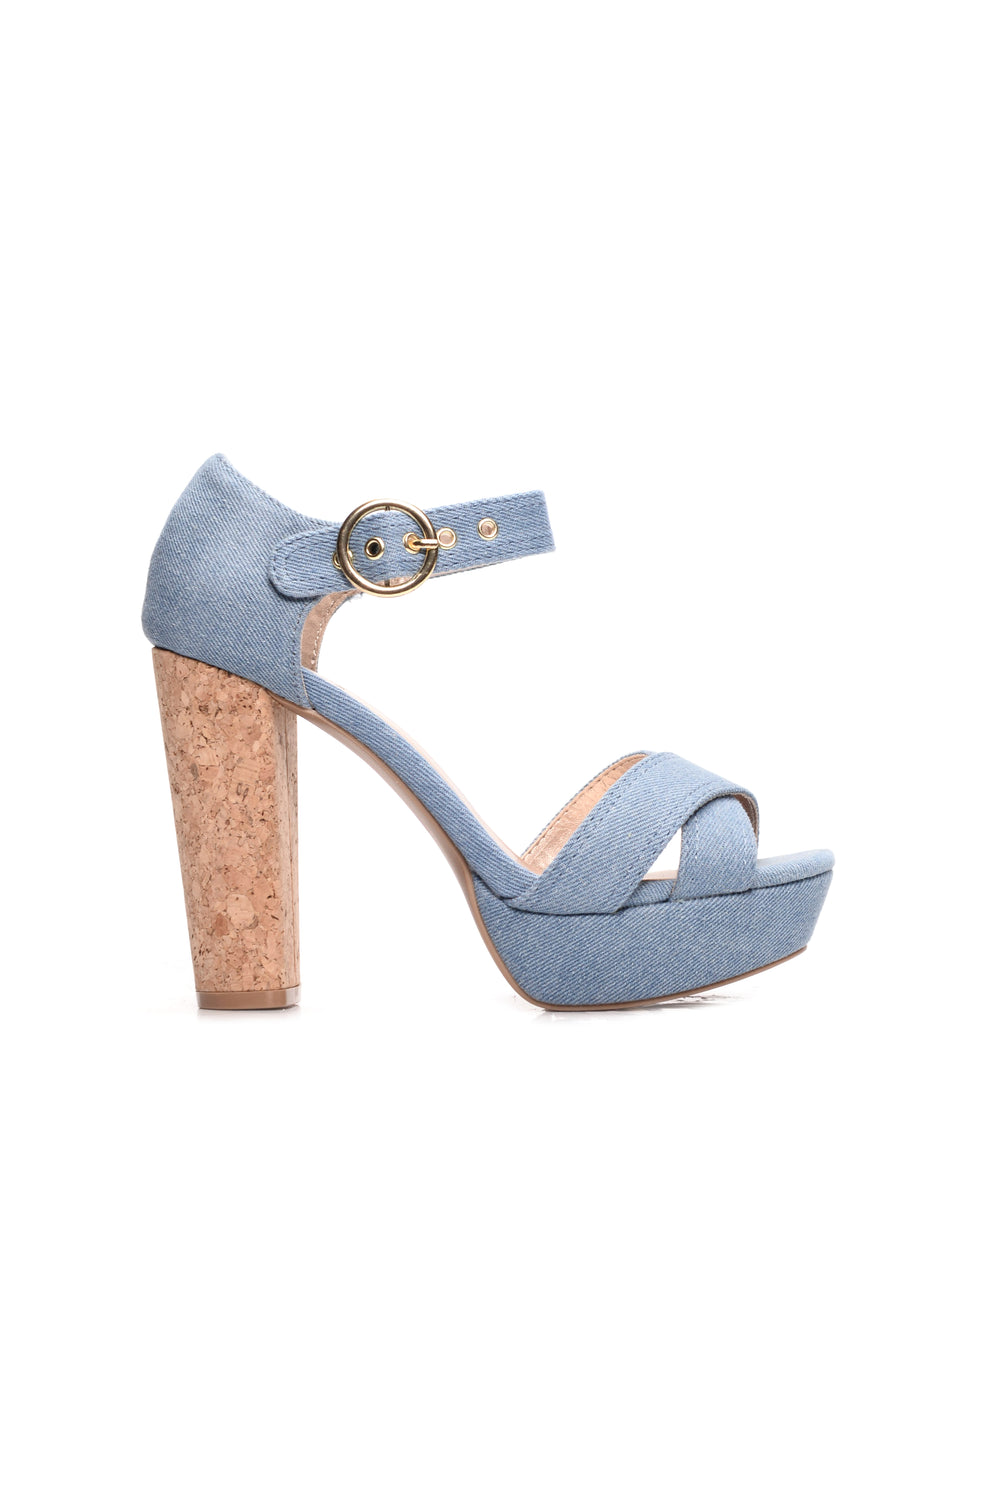 Call Me Corky Heel - Denim